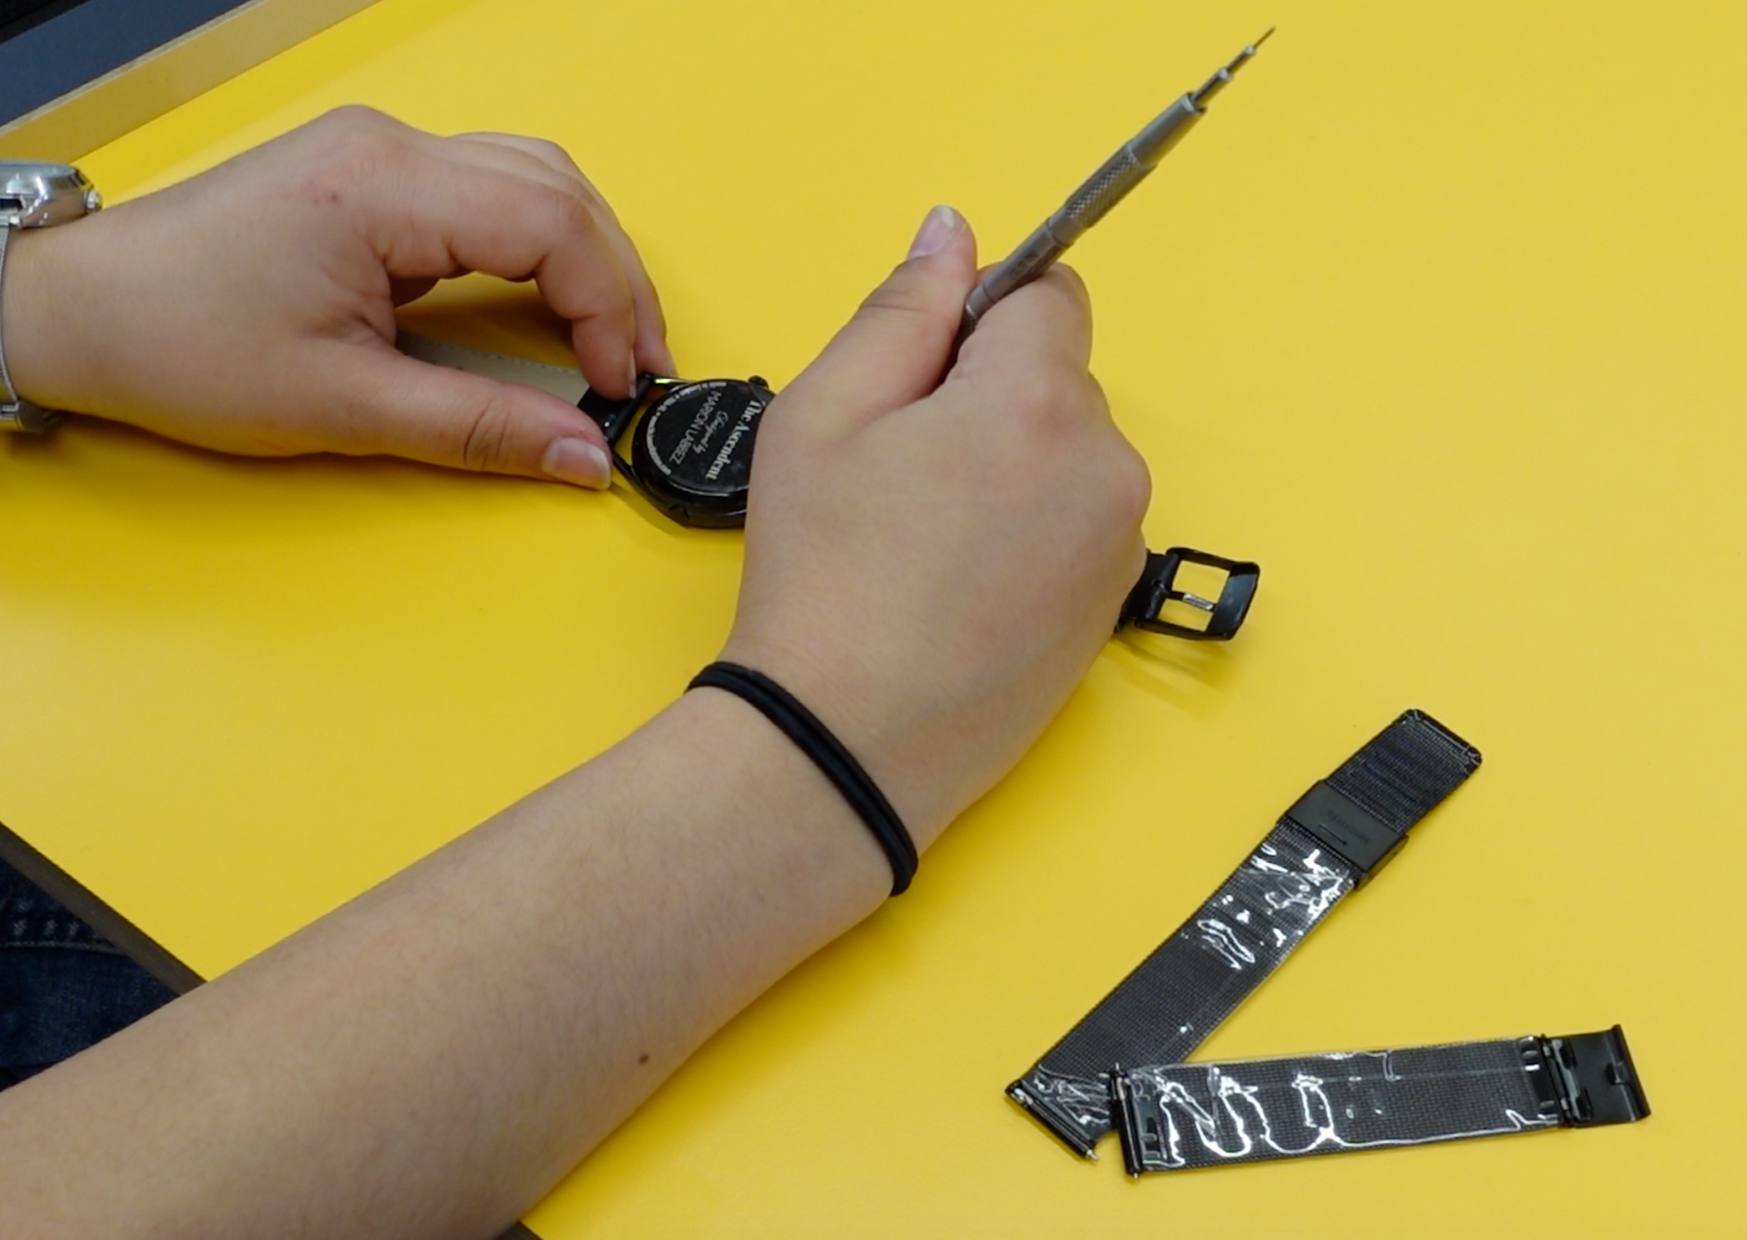 Changing the watch strap with a spring bar tool